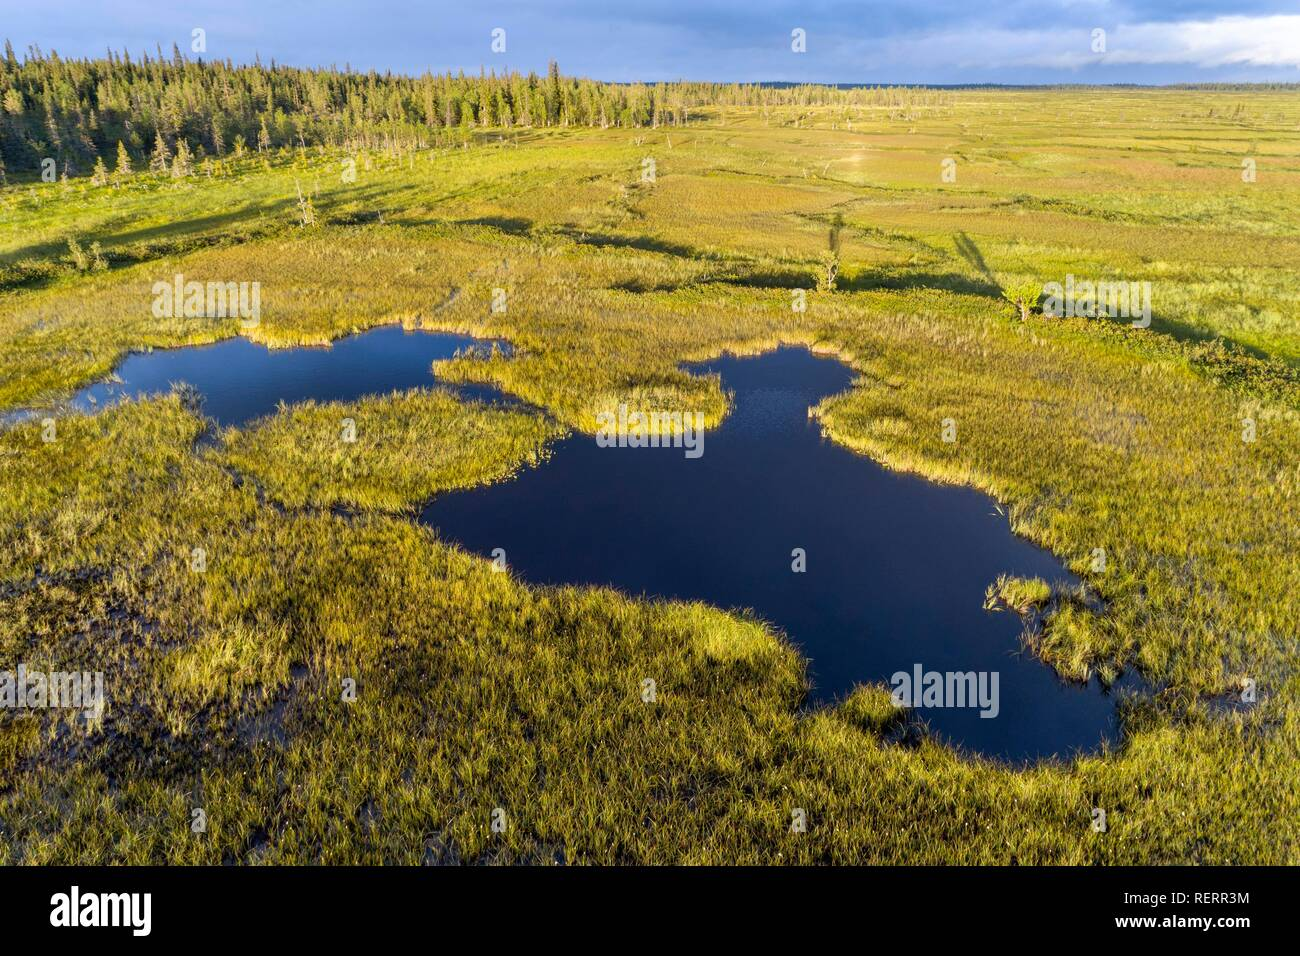 Drone view, aerial photography, lake in wetland, bog, boreal, arctic conifers, Sodankylä, Lapland, Finland - Stock Image